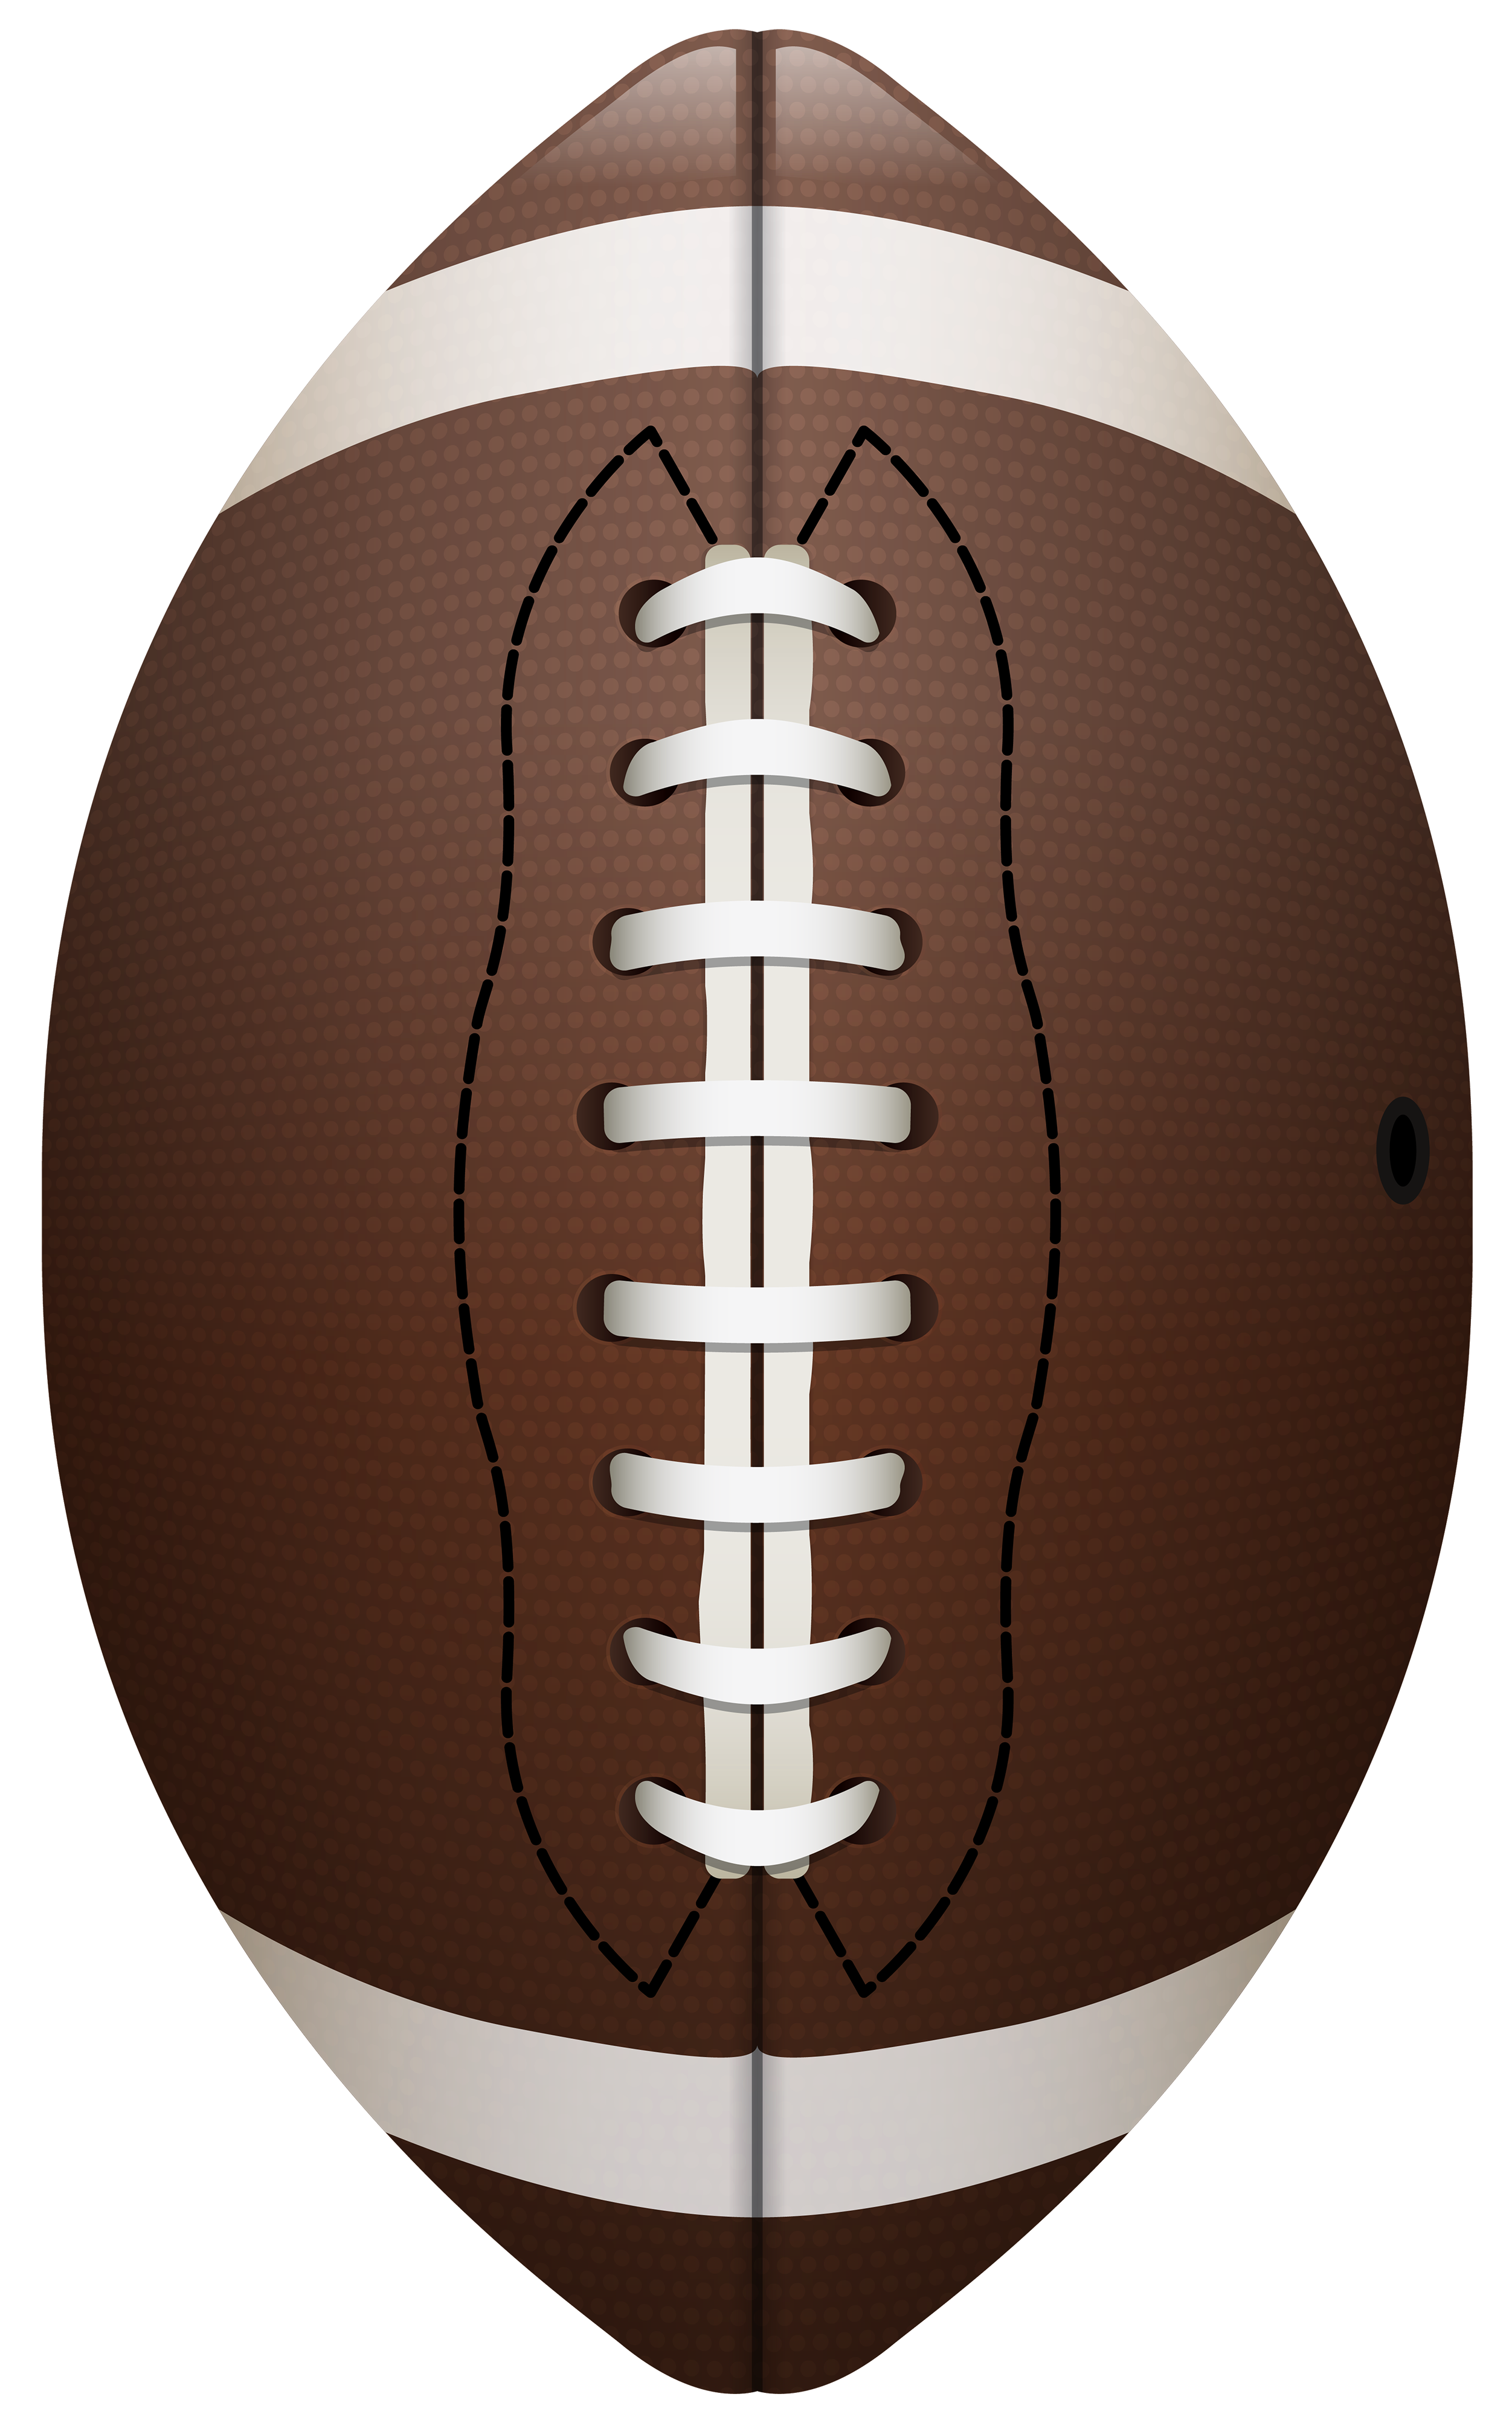 Football png clipart. Ball best web